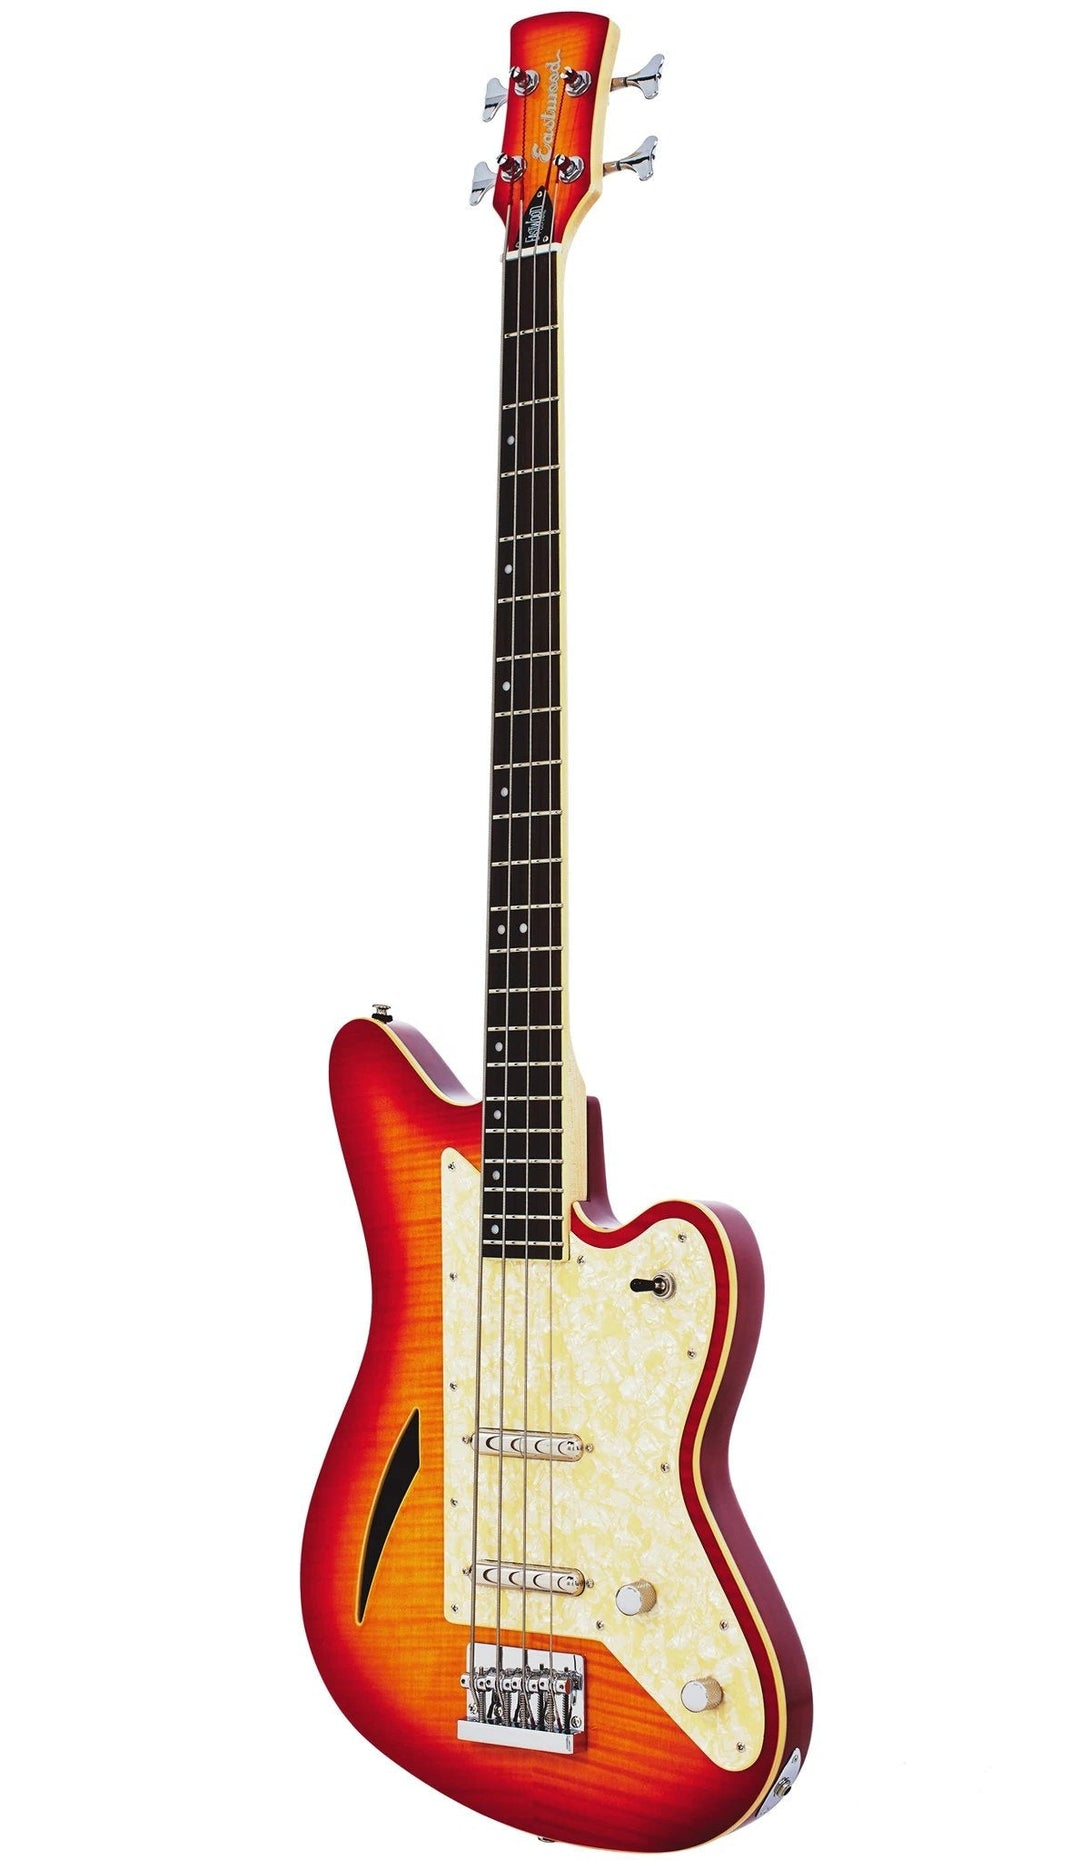 Eastwood Guitars Surfcaster Bass Cherryburst Angled